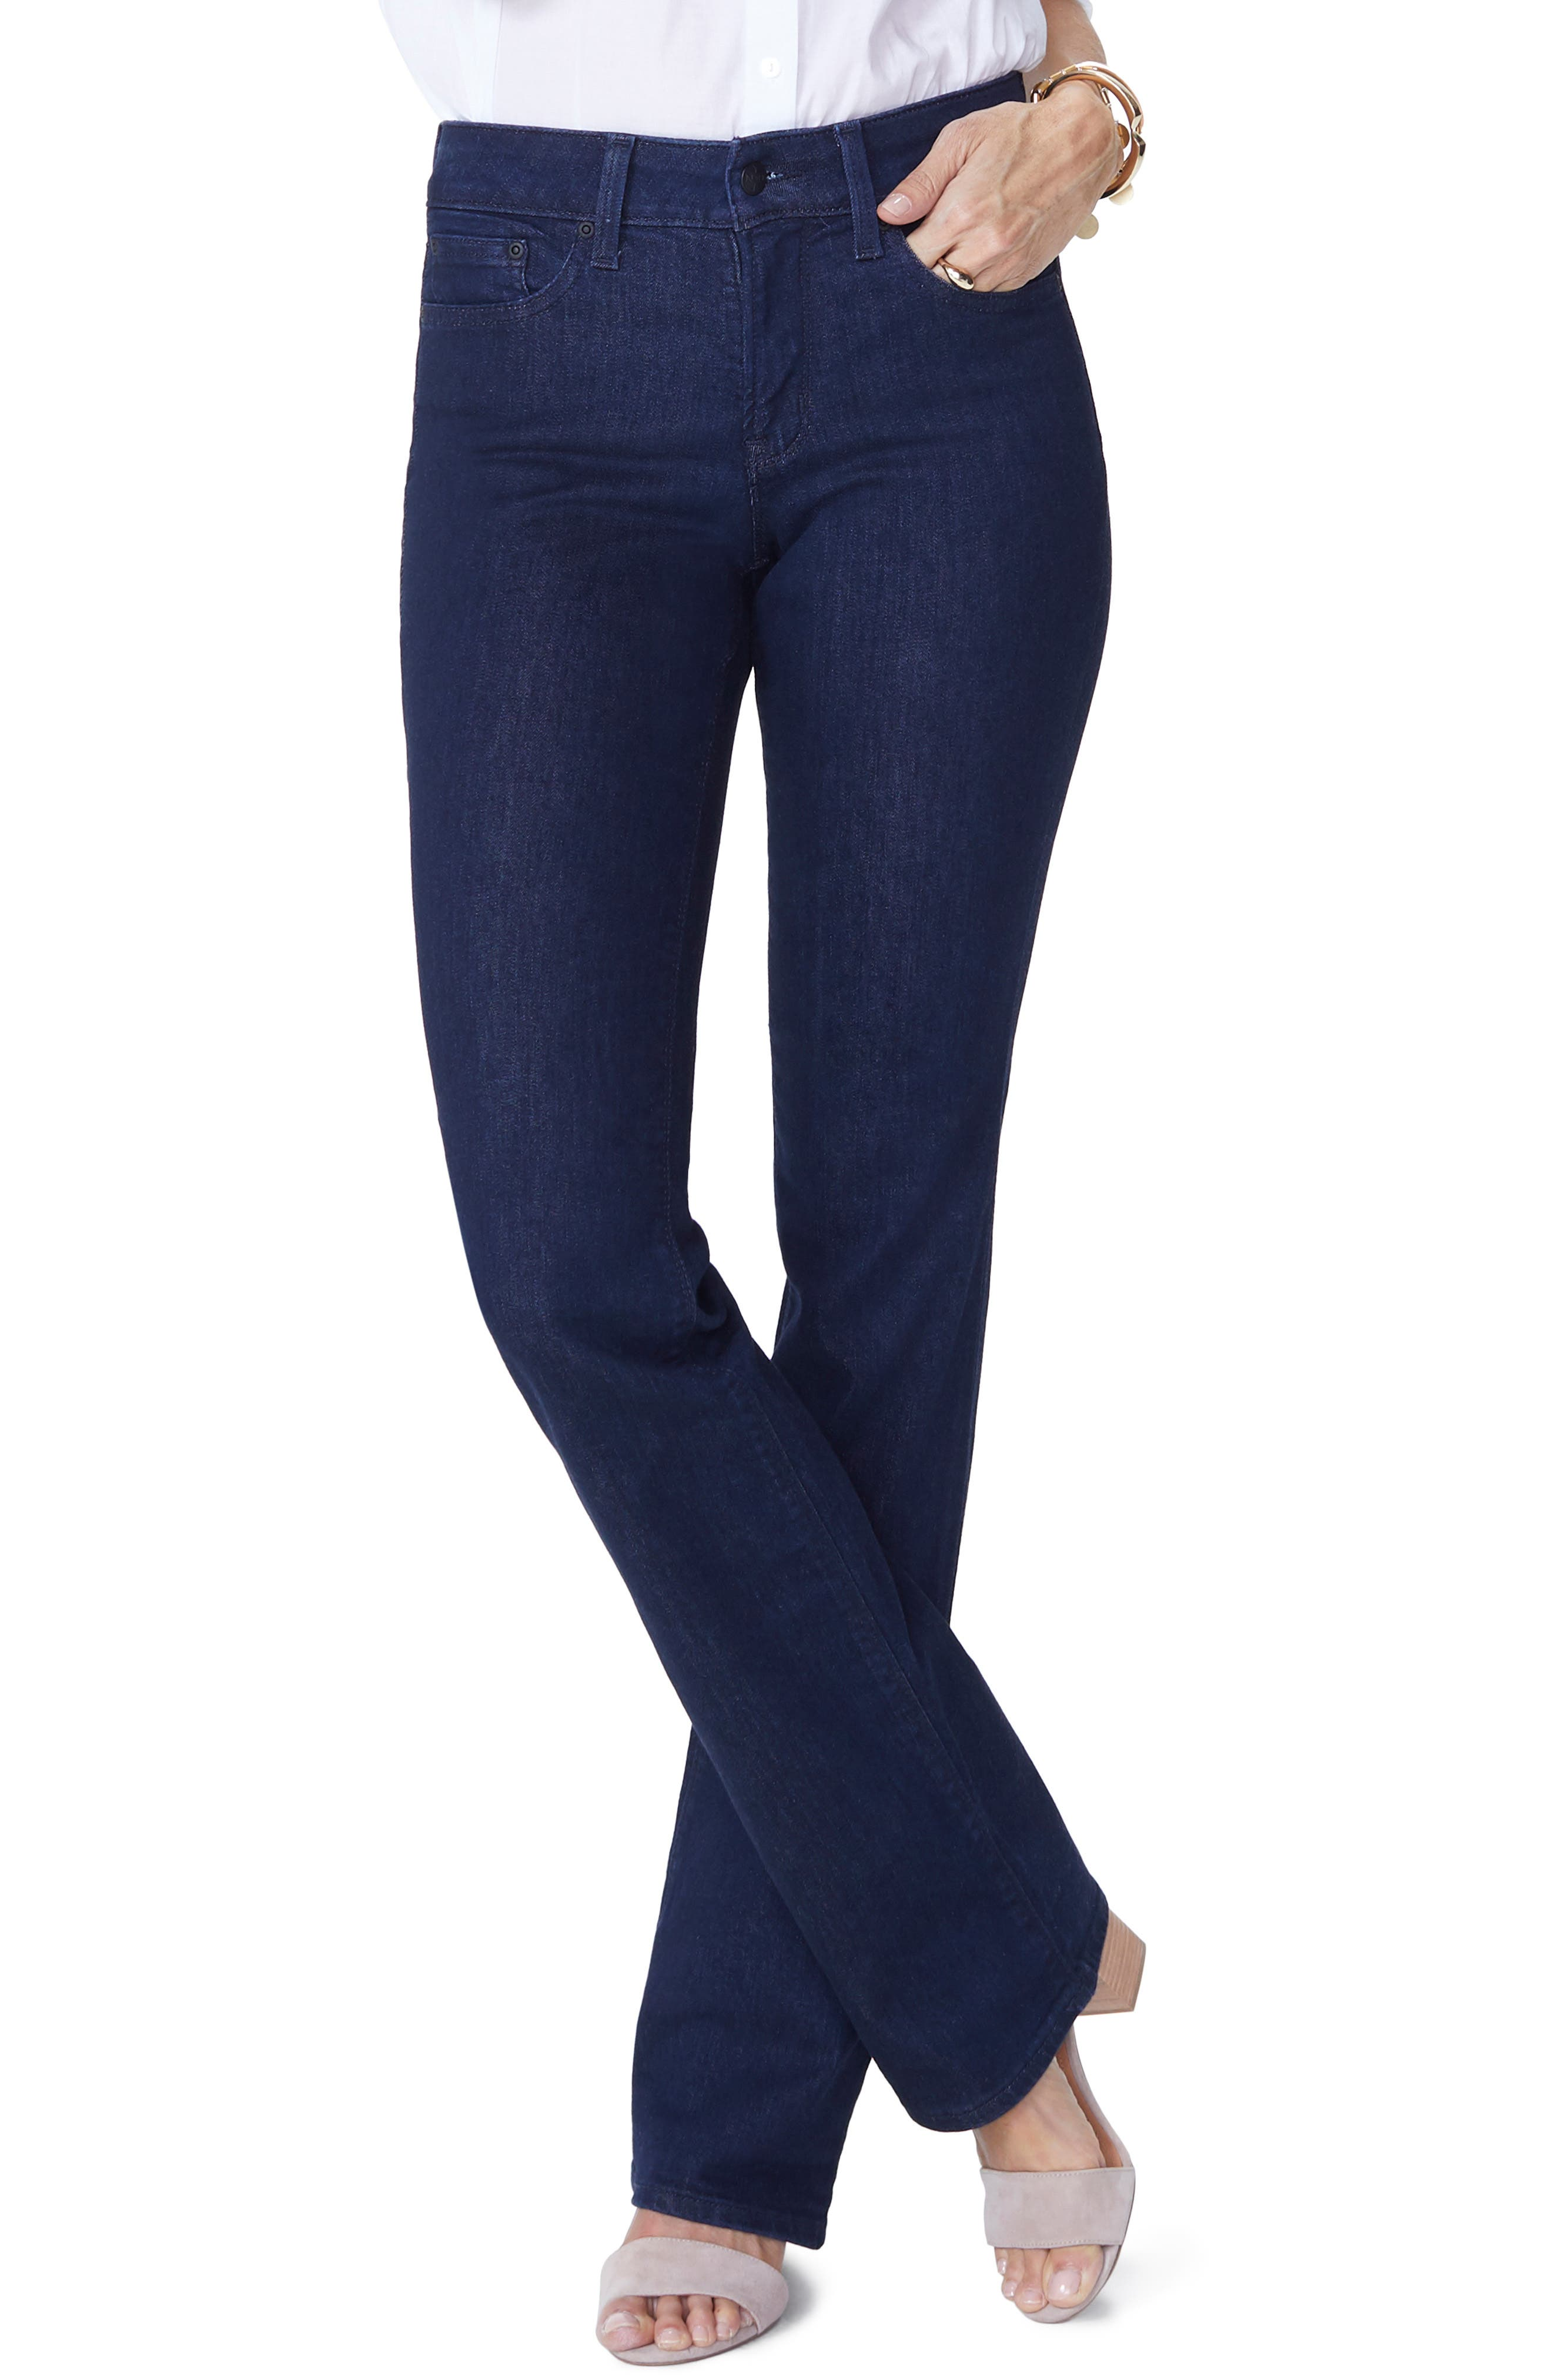 Barbara Curves 360 Bootcut Jeans,                         Main,                         color, RINSE